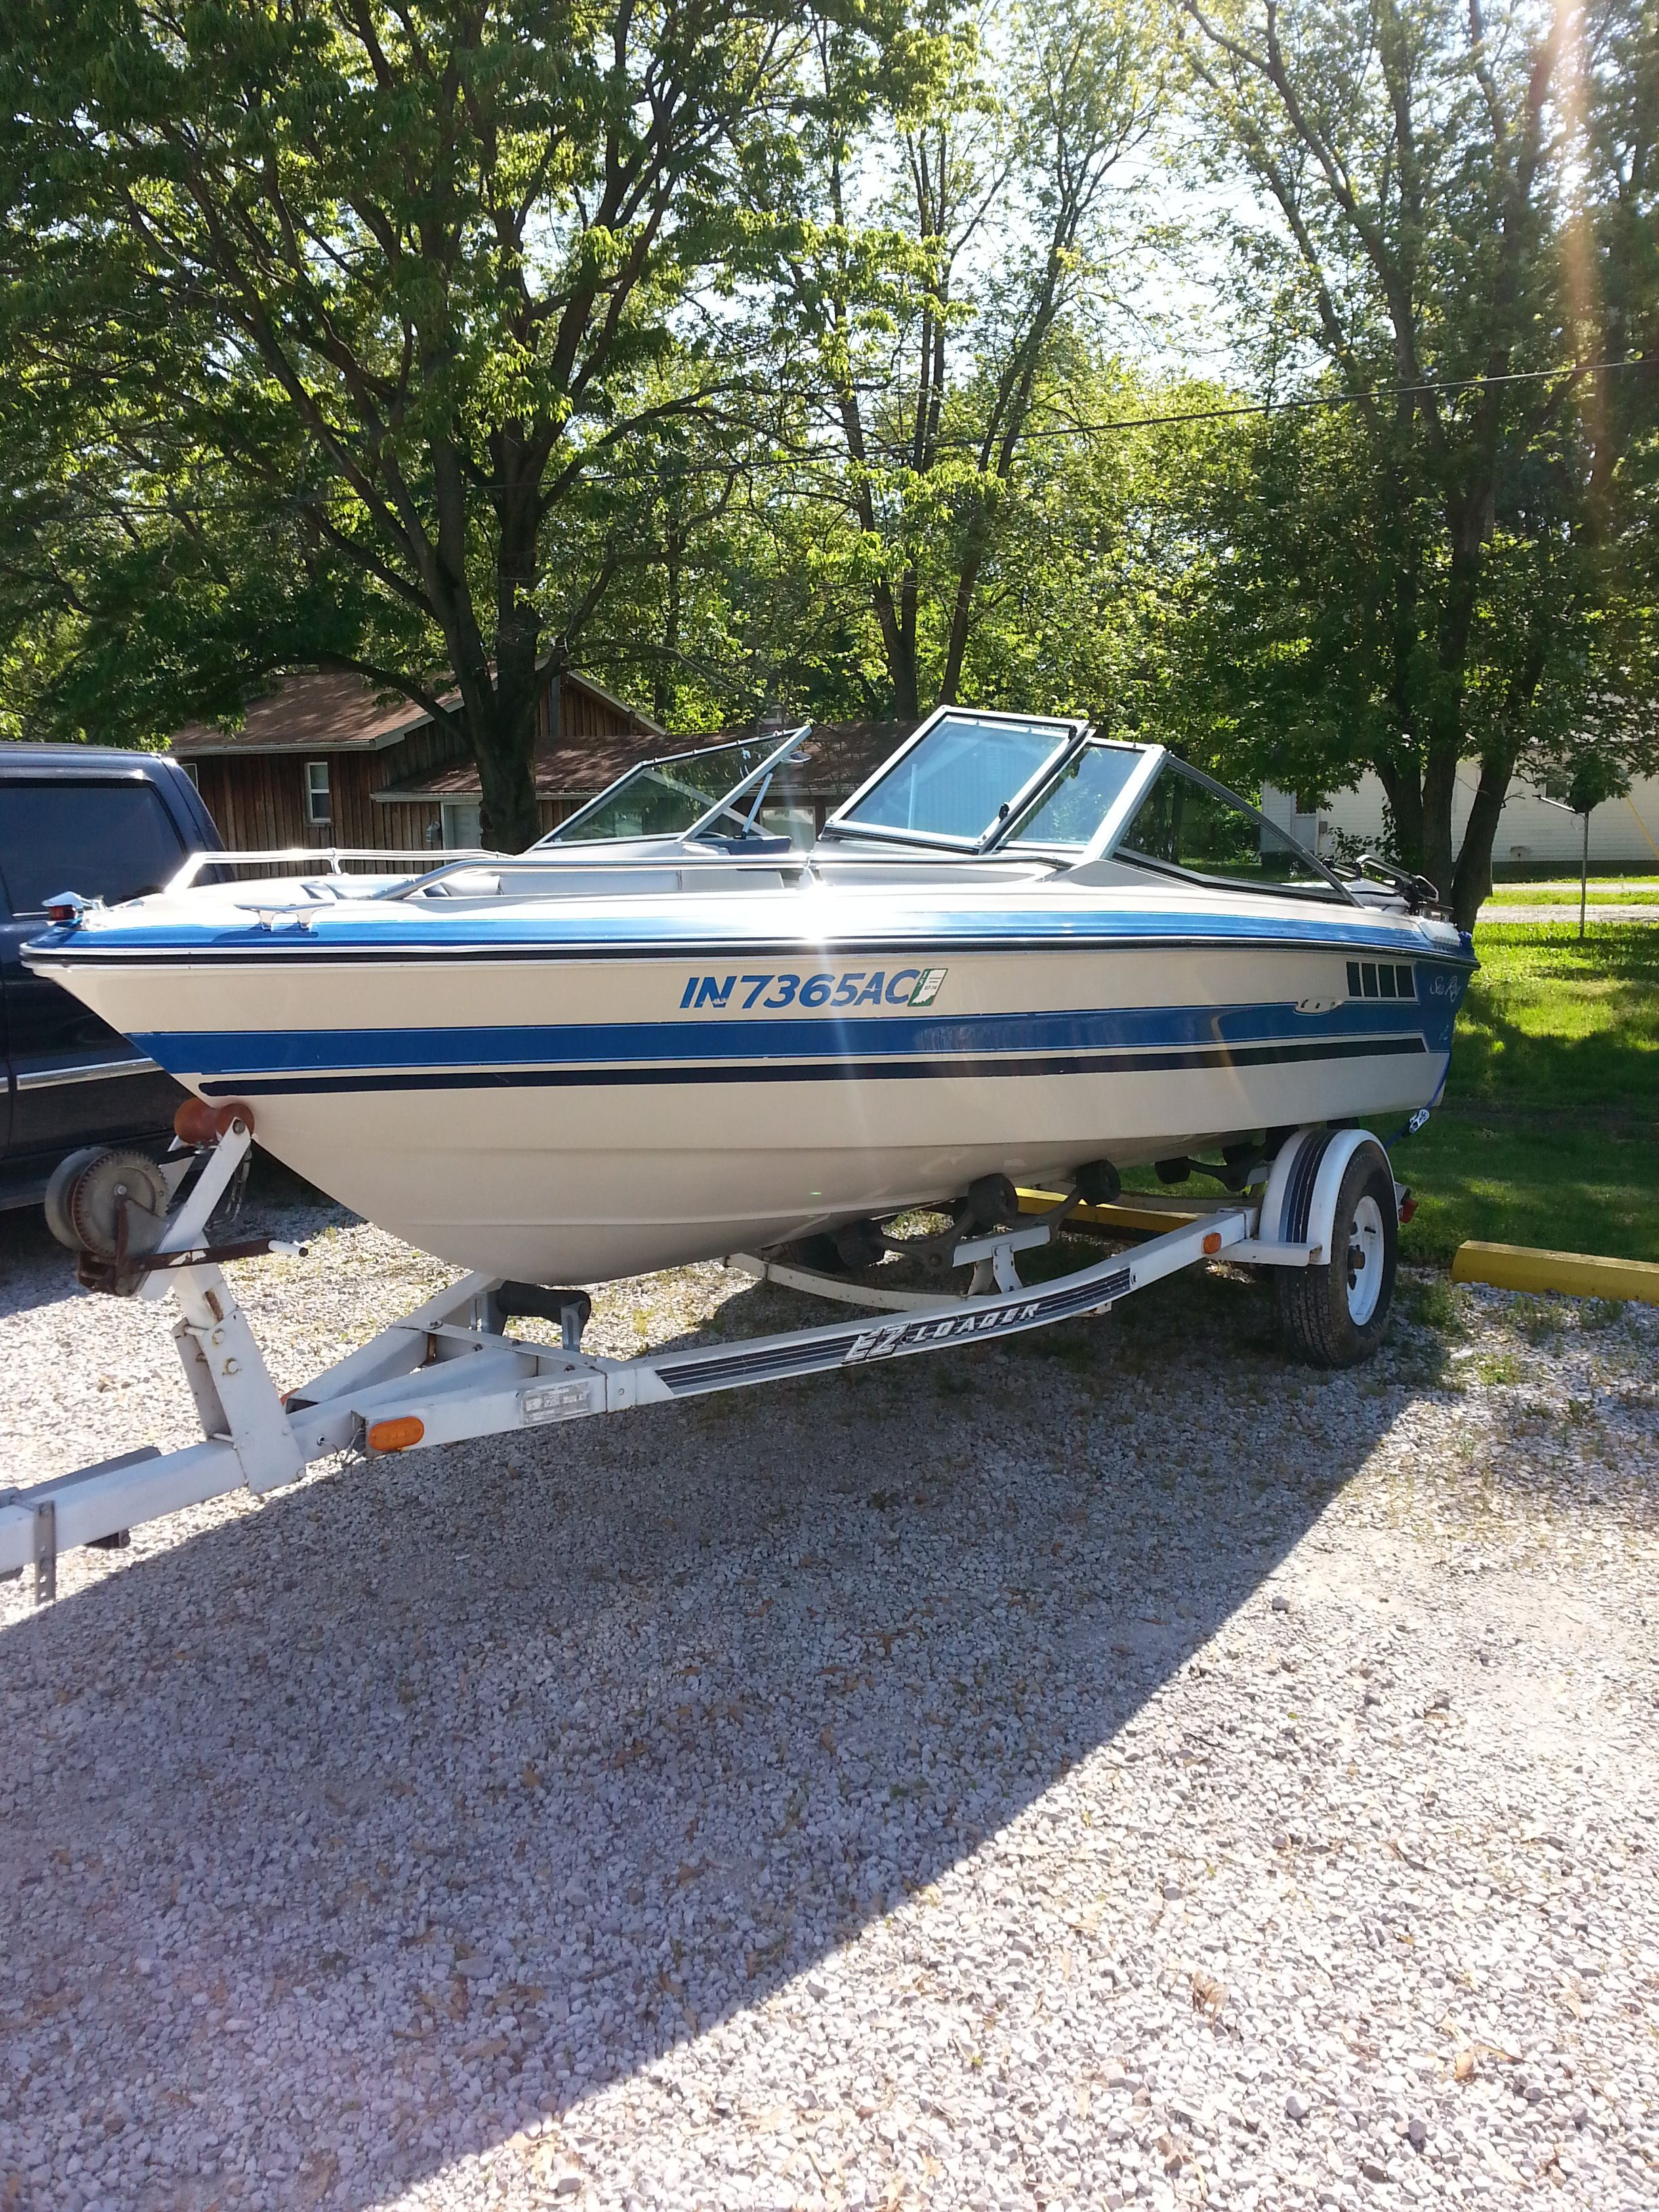 1987 Sea Ray - As you can see, the gel coat is in excellent shape